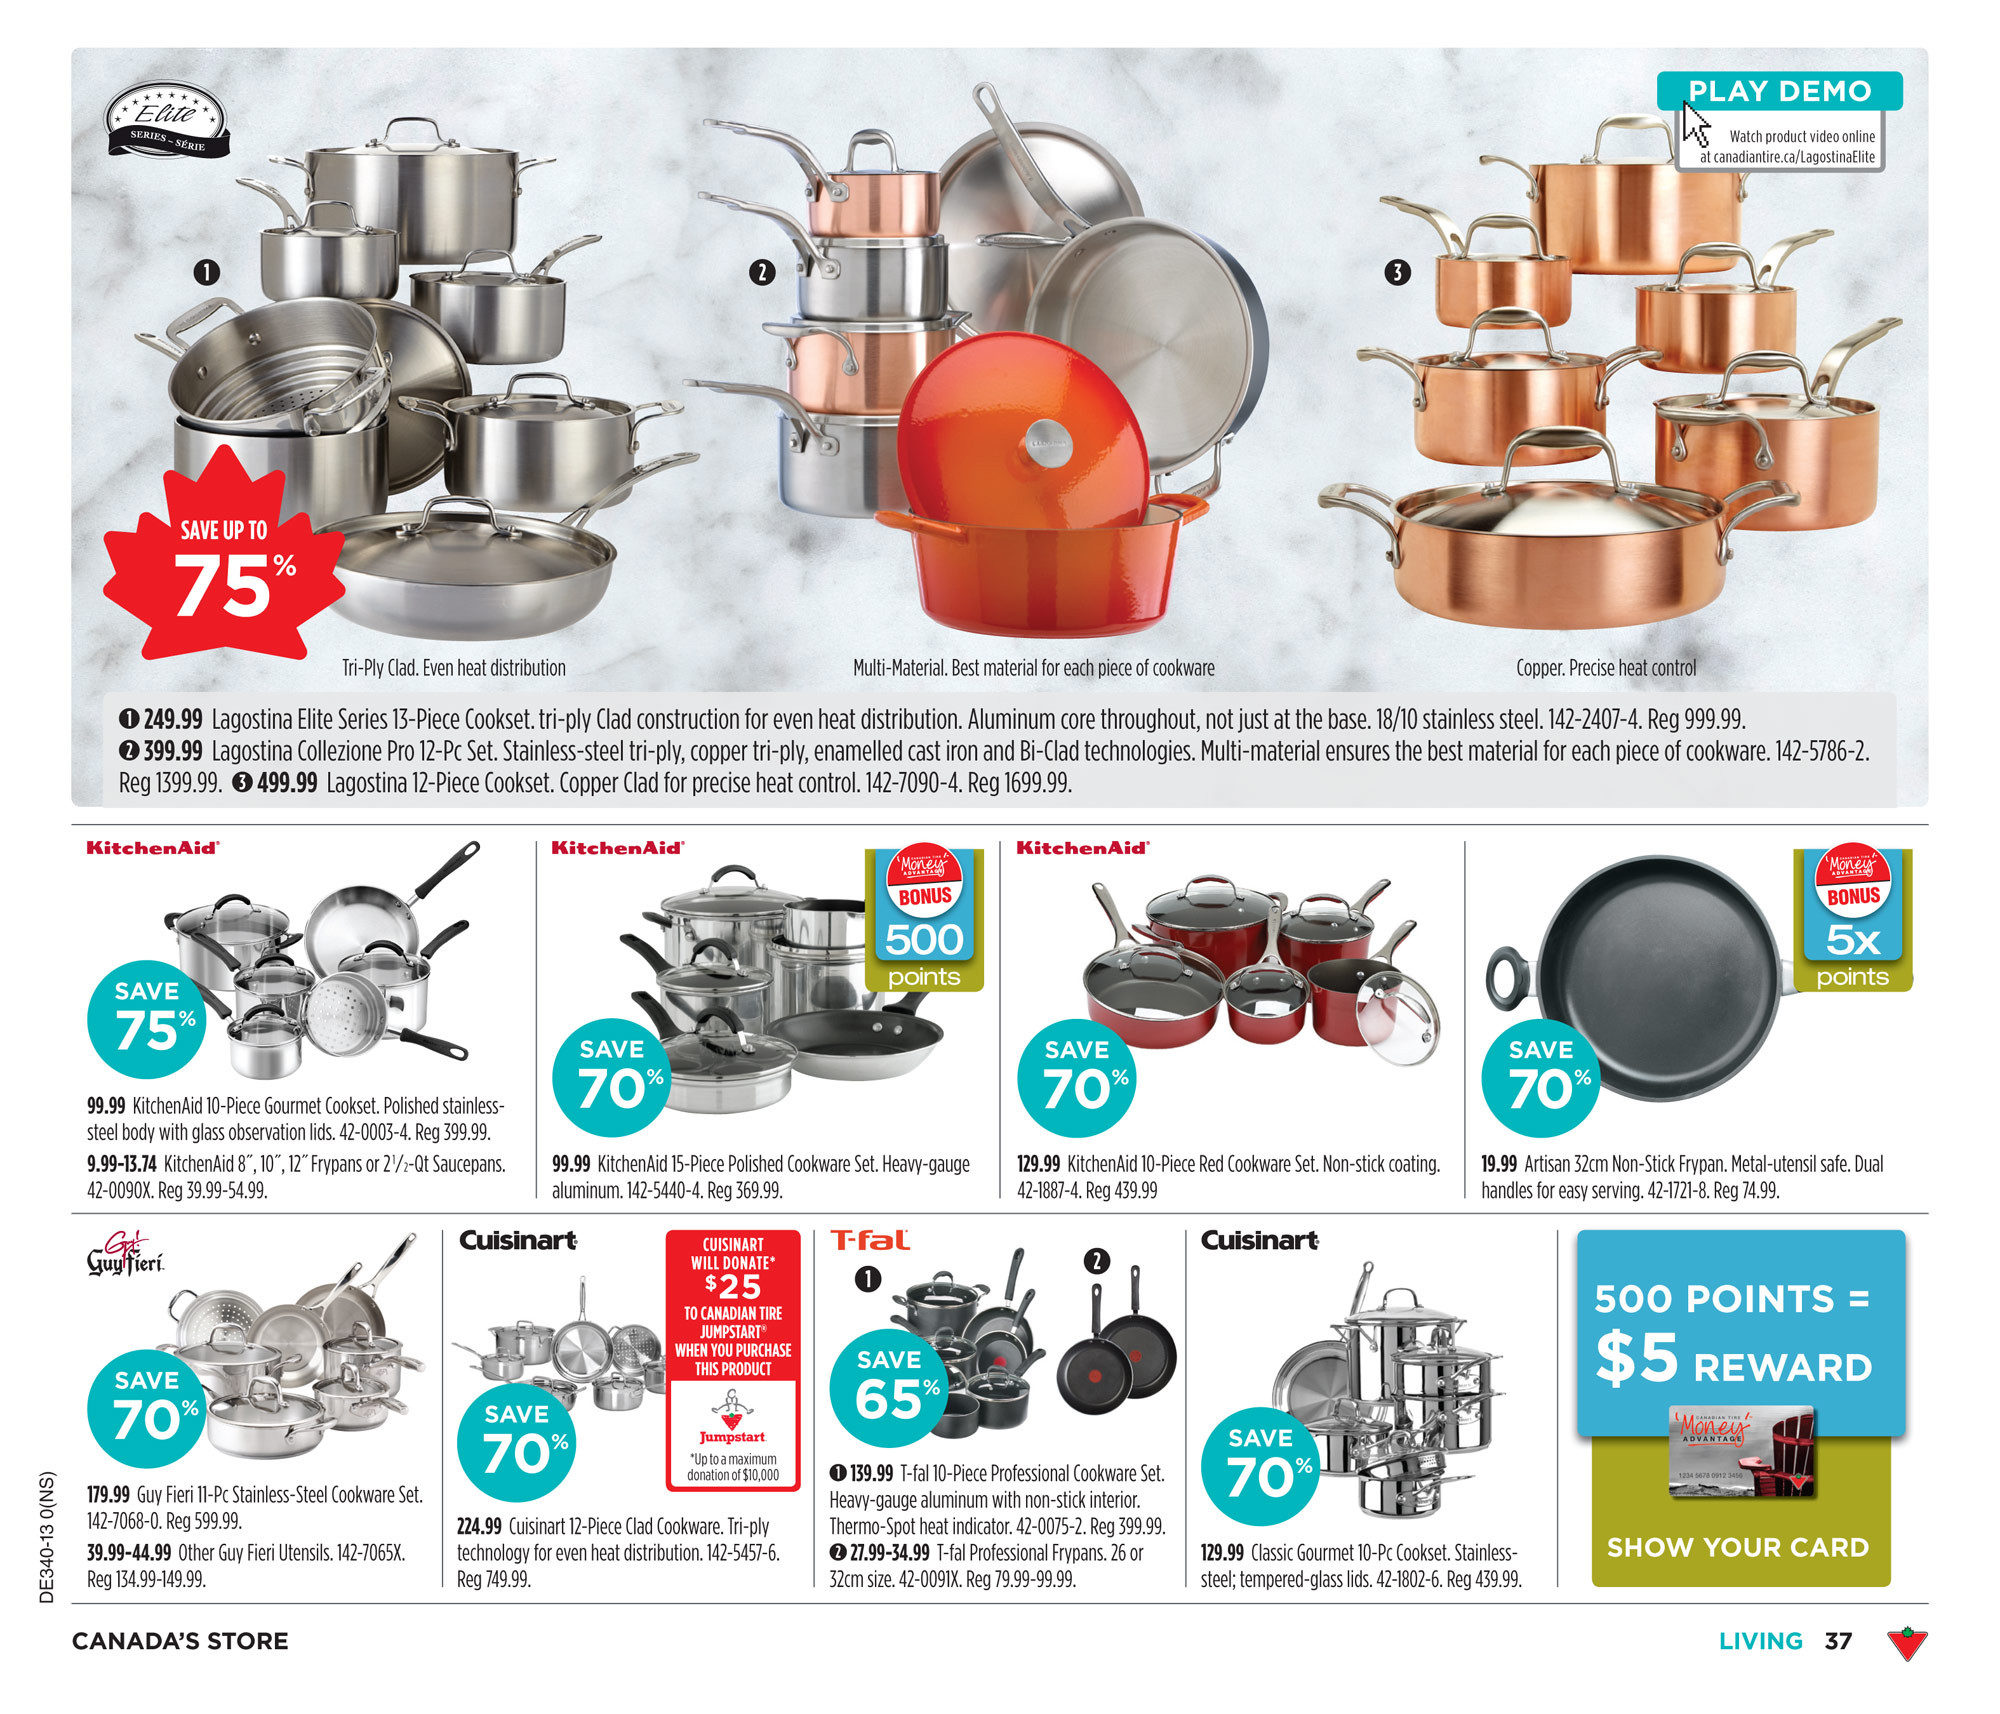 Canadian Tire Weekly Flyer Weekly Flyer Sep 26 – Oct 3